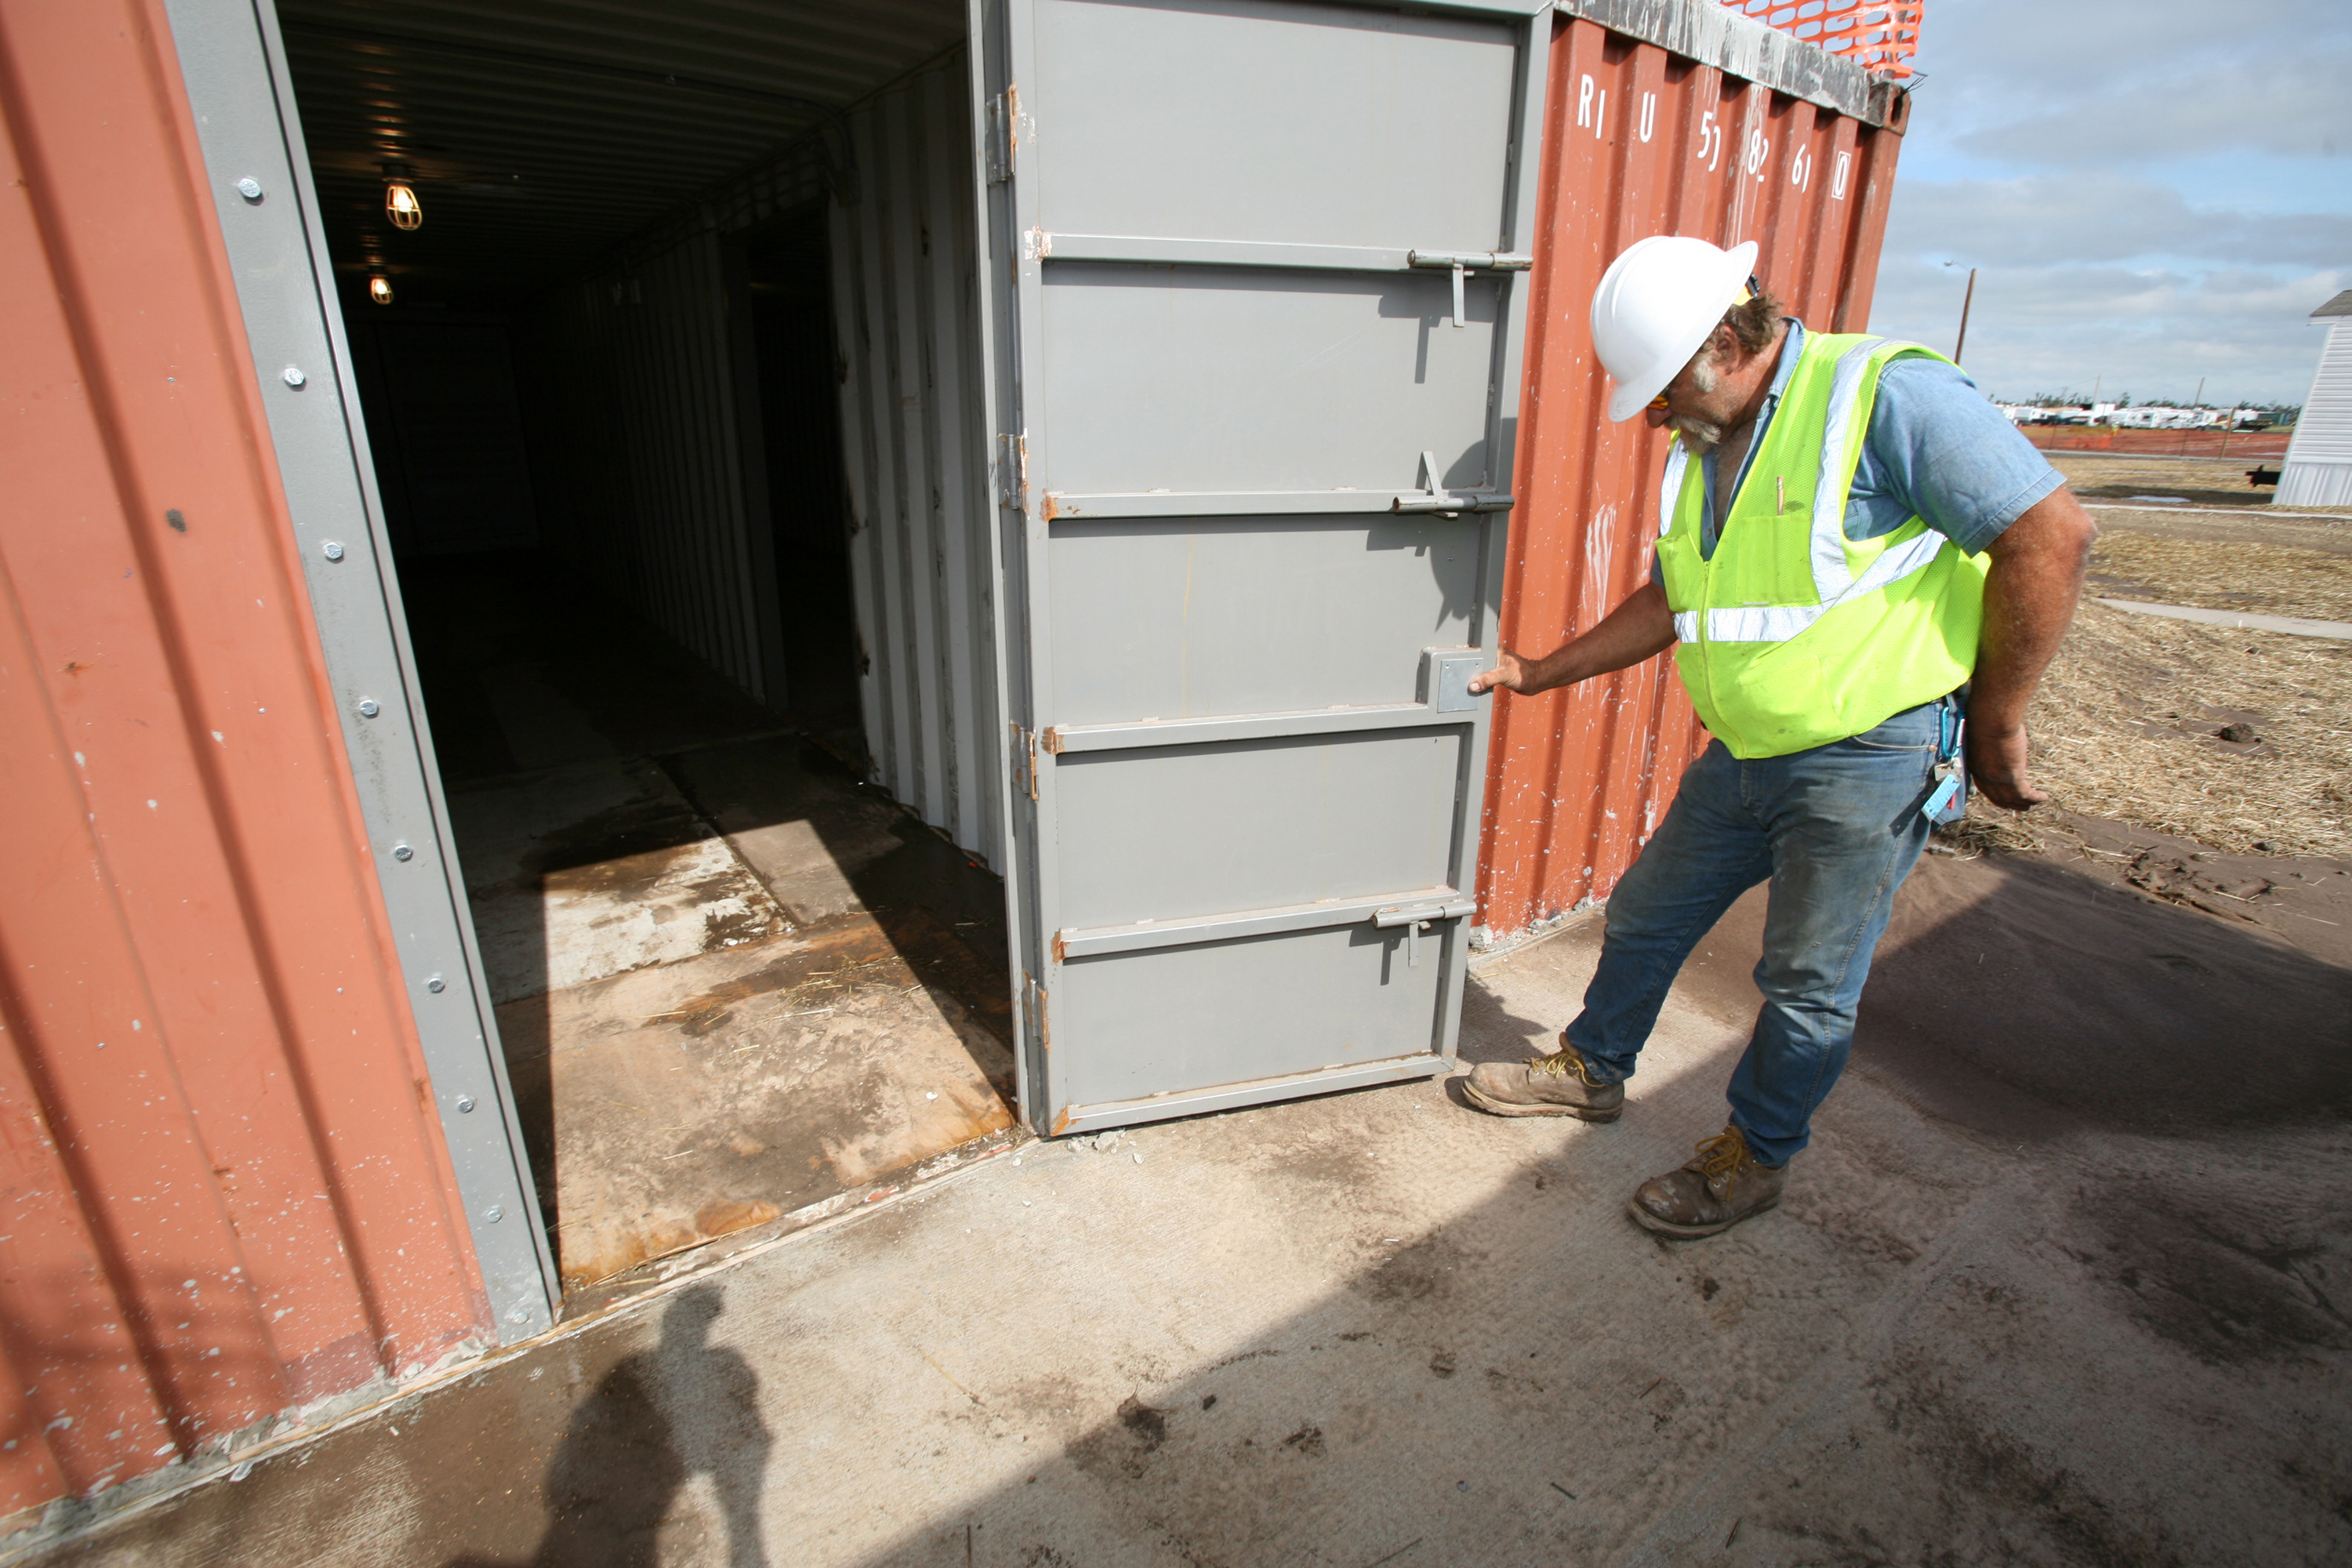 Best Kitchen Gallery: File Fema 31253 Storm Shelter Tornado In Kansas At Fema of Shipping Container Storm Shelter on rachelxblog.com